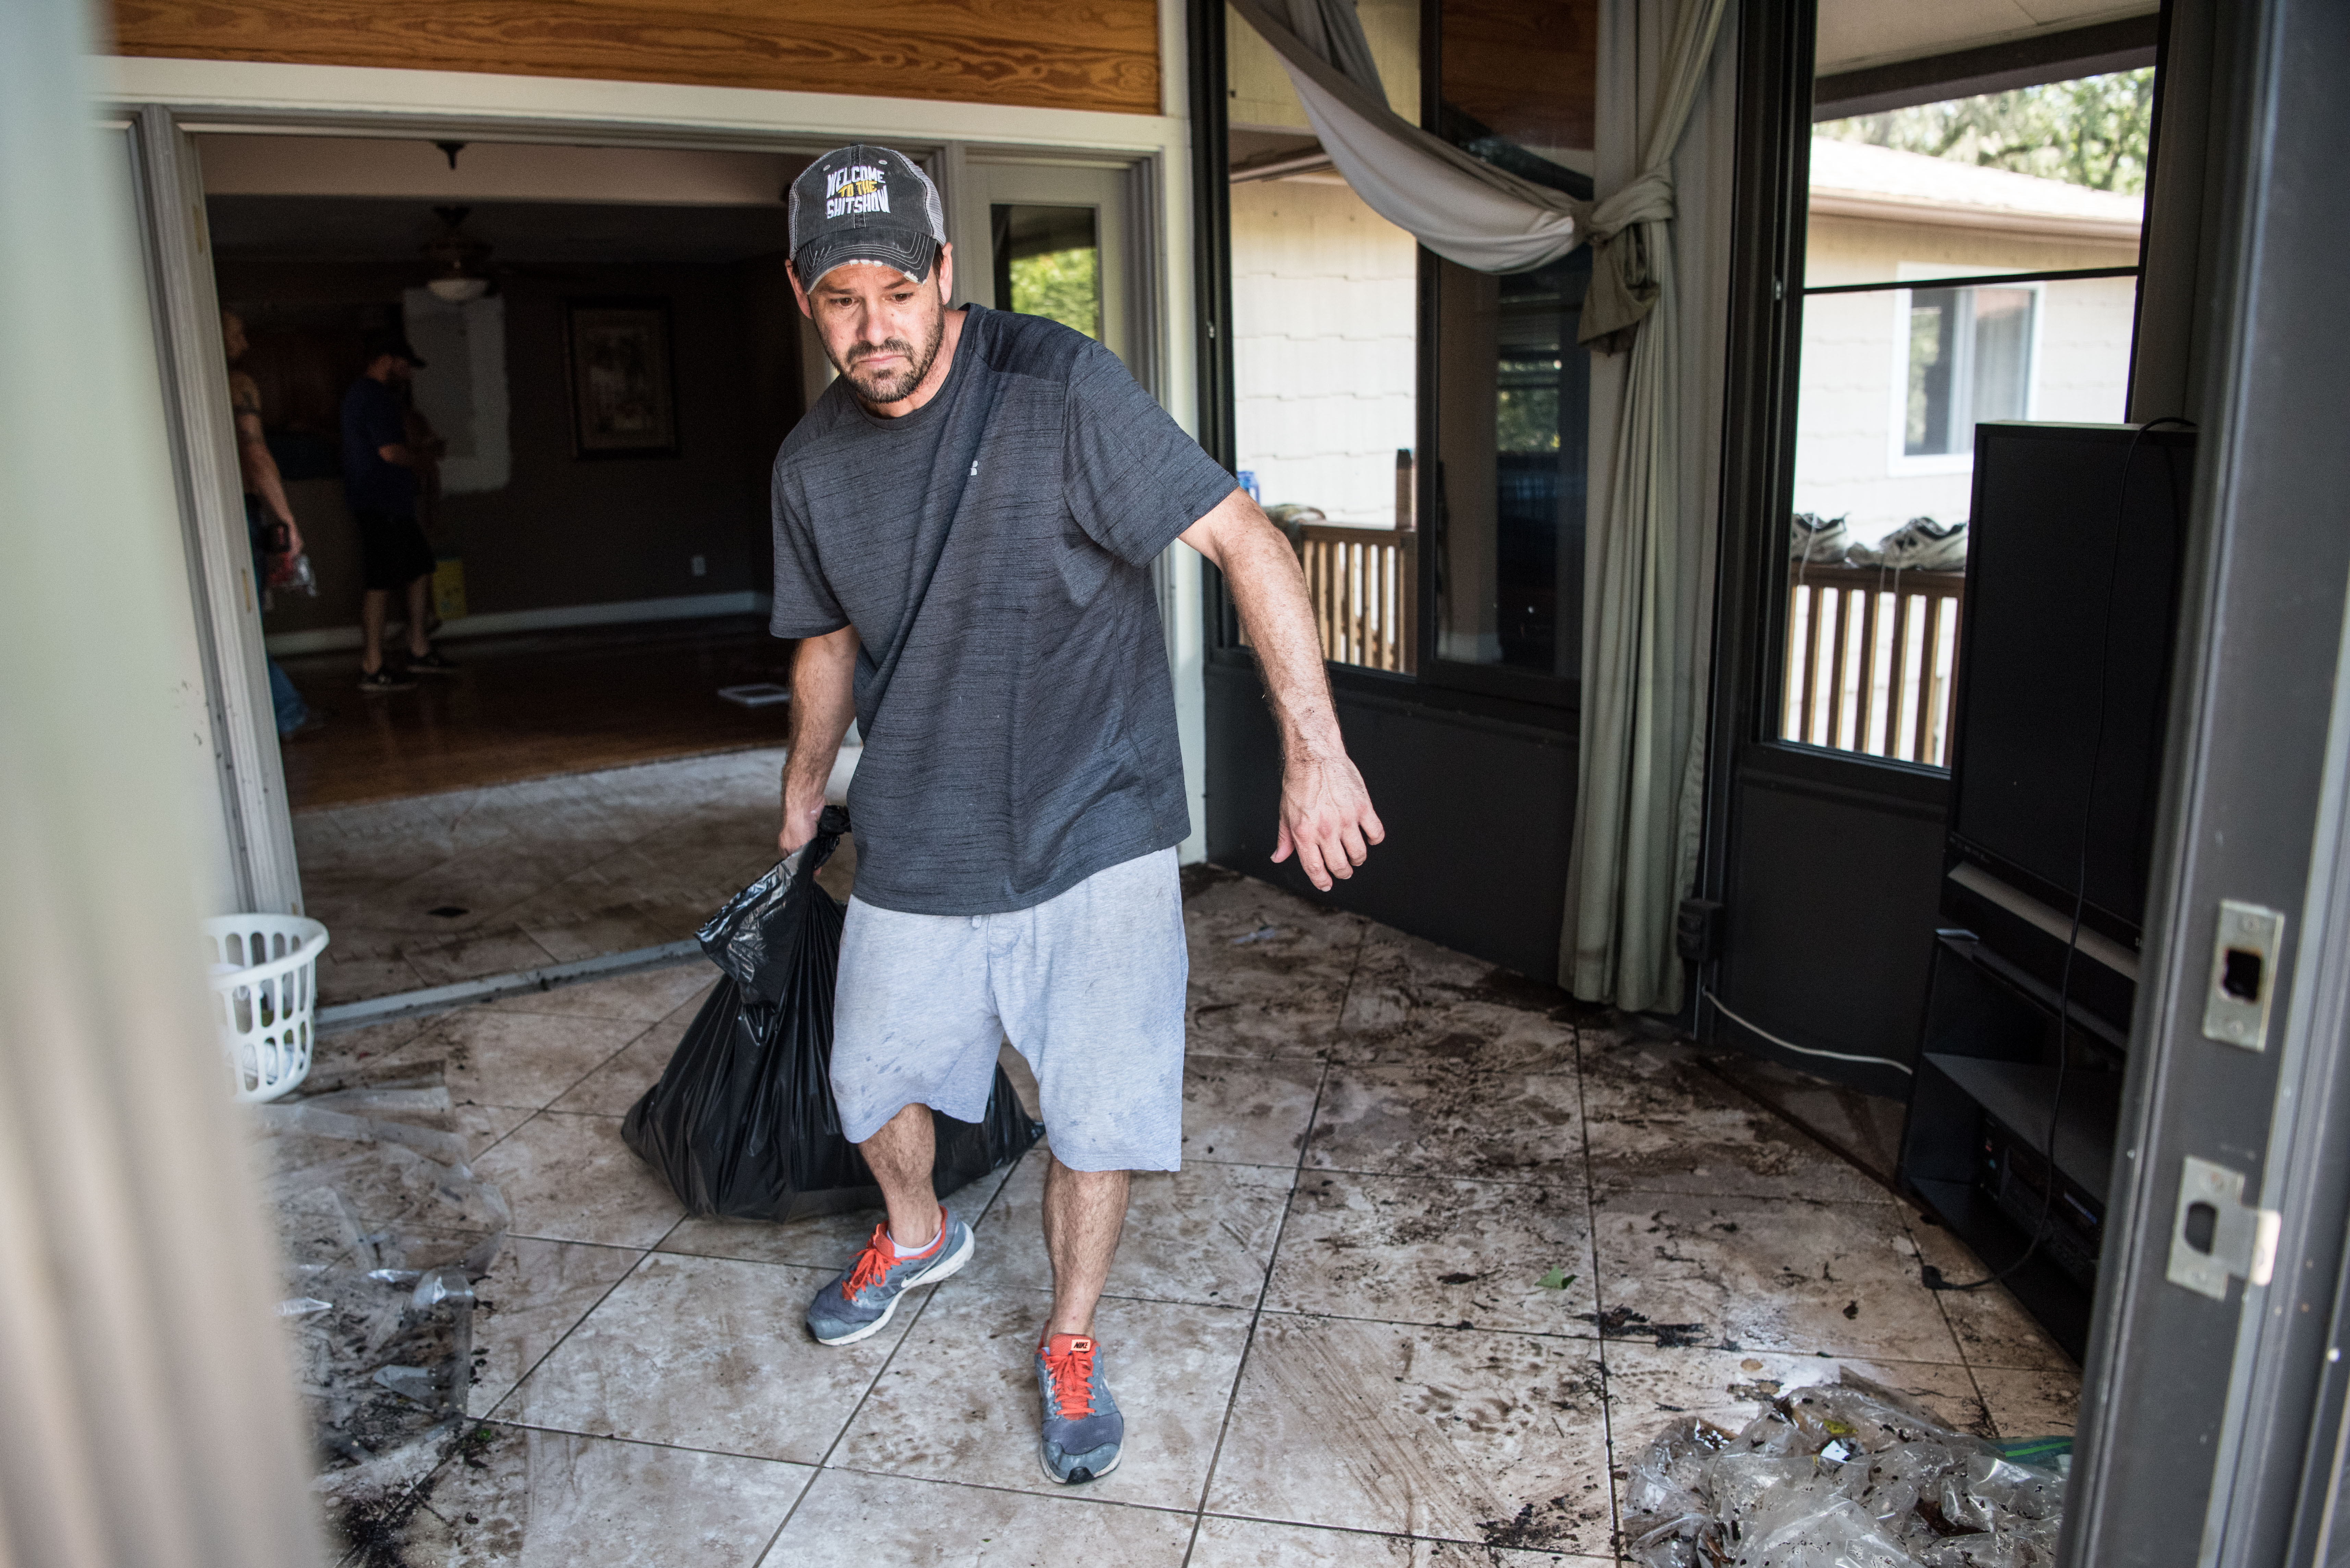 David Dionne helps to clean up as floodwaters from Hurricane Irma recede September 13, 2017 in Middleburg, Florida.